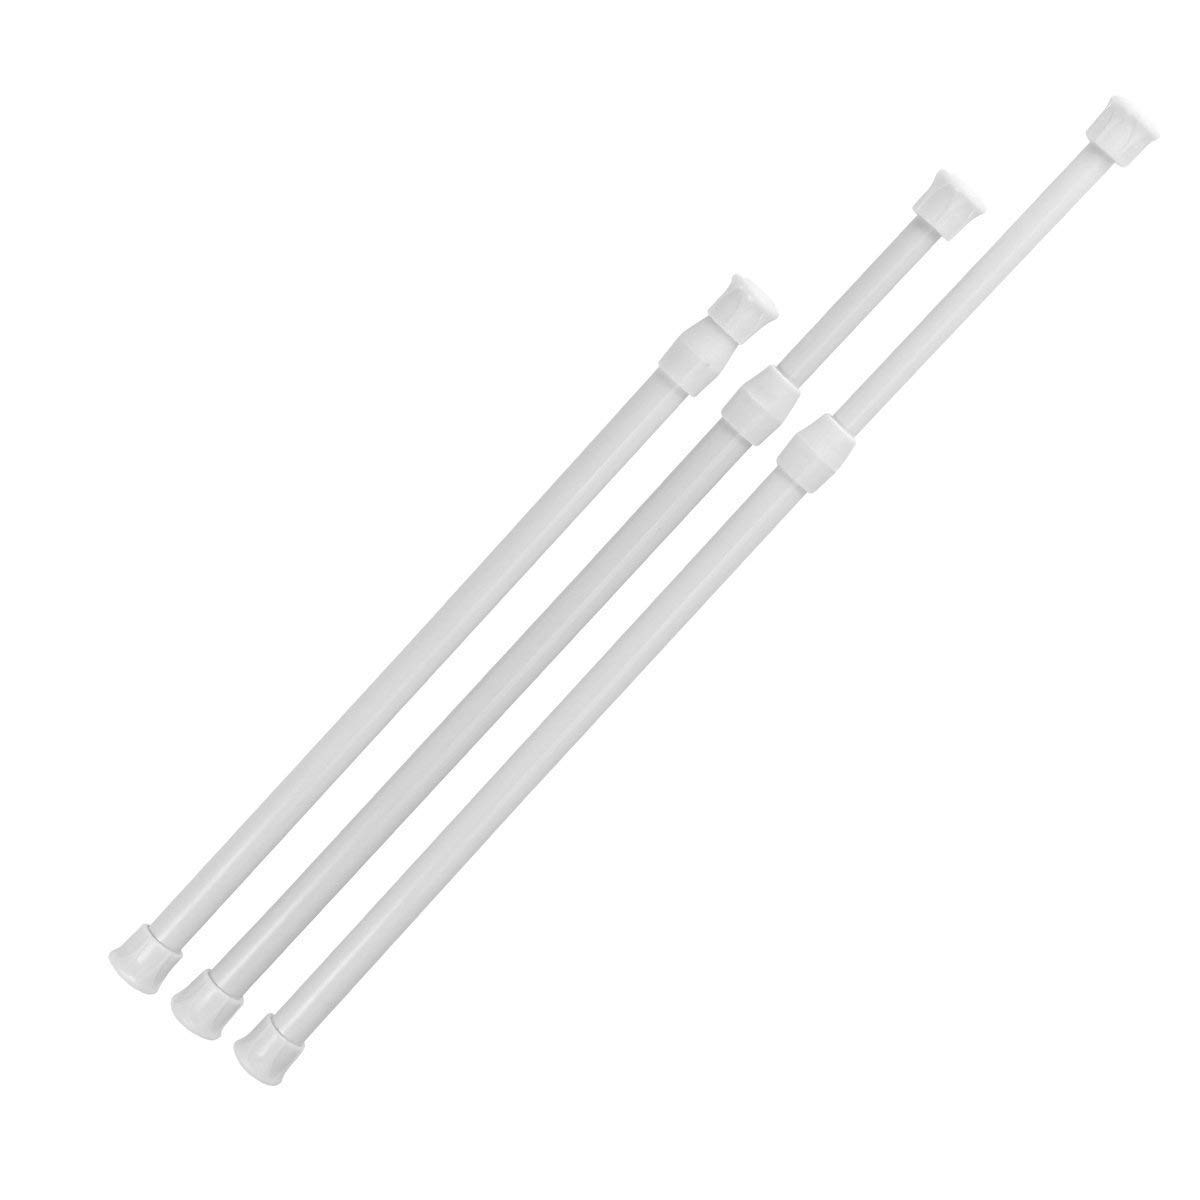 AIEVE Tension Rod,Tension Curtain Rod,3 Pack Adjustable Spring Tension Rods Cupboard Bars for Windows,Wardrobes,11.7 to 20.5 Inches (White)